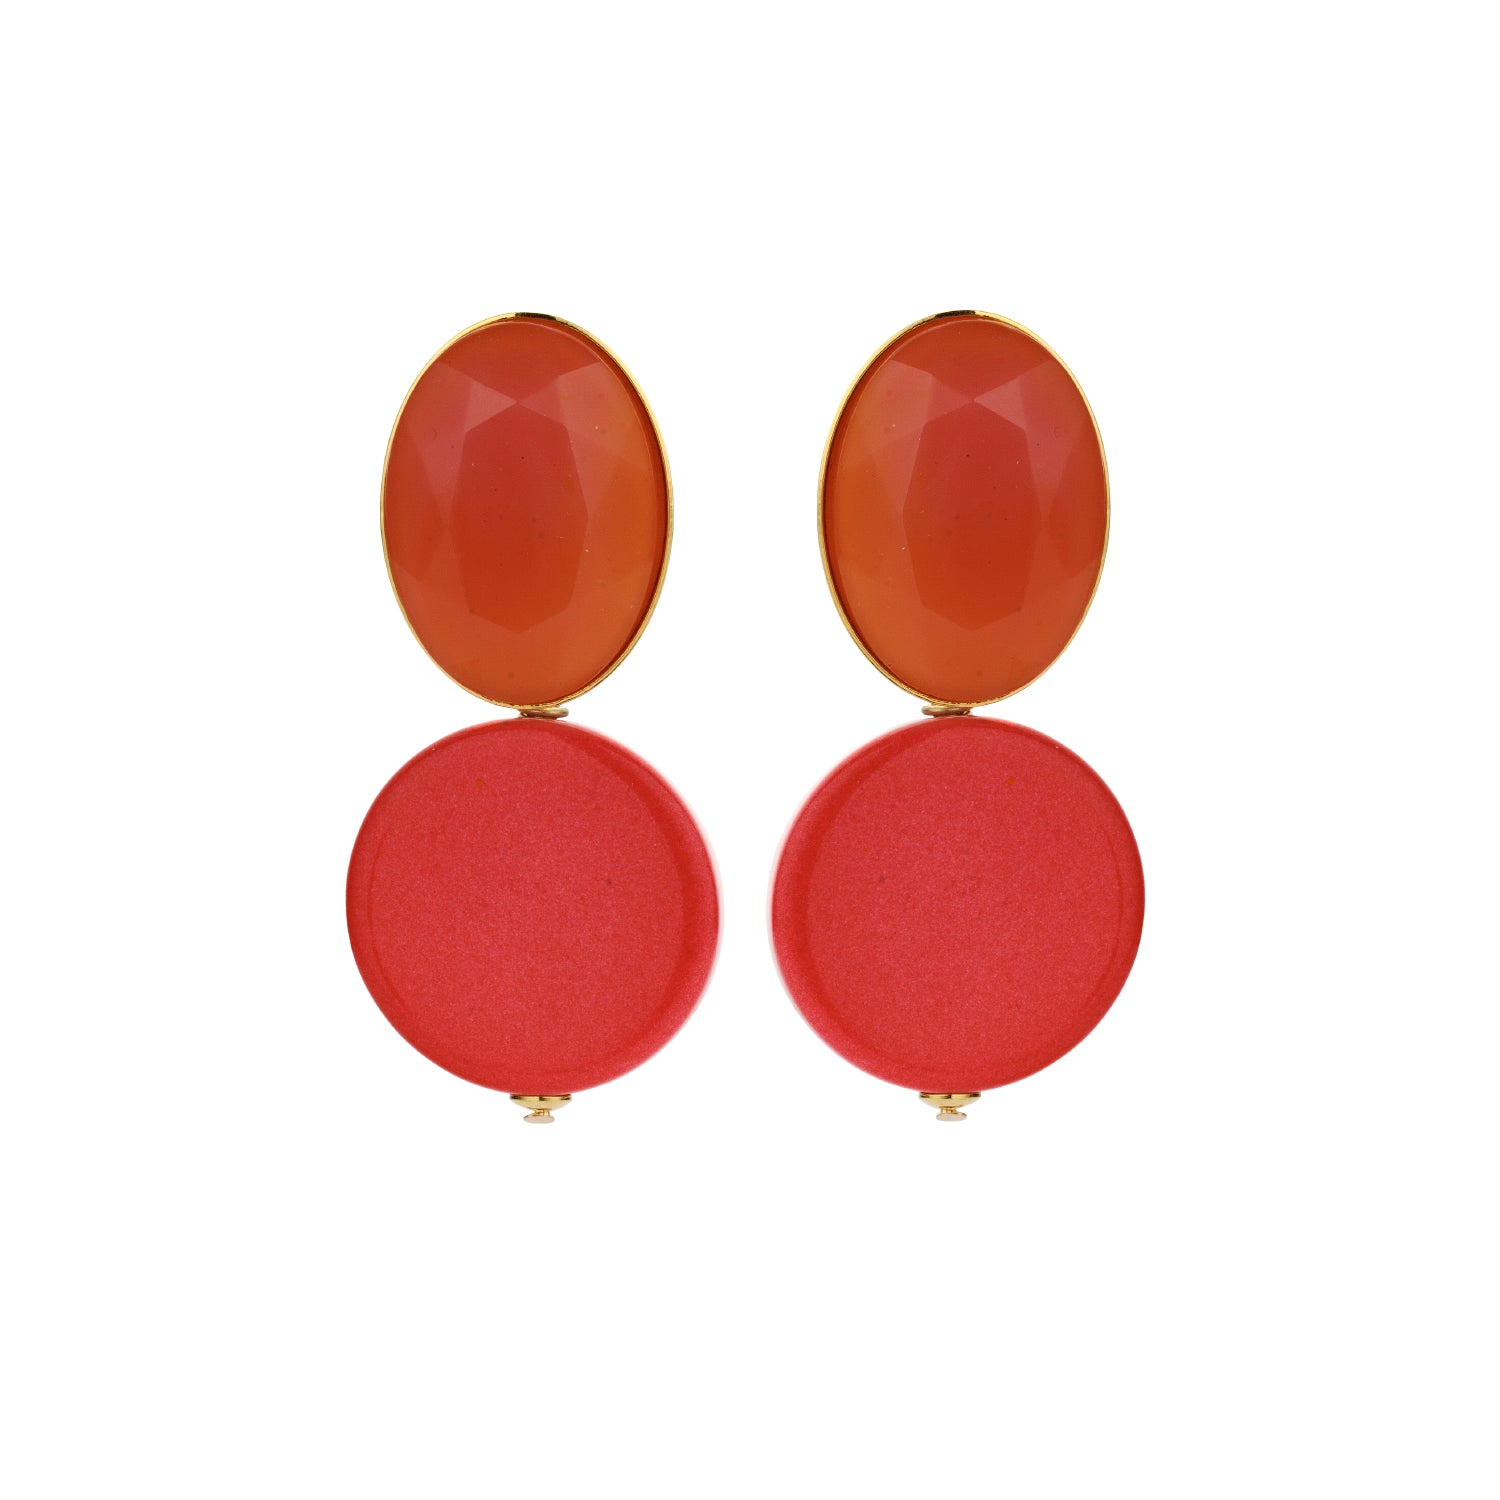 Mona coral earrings - Souvenirs de Pomme